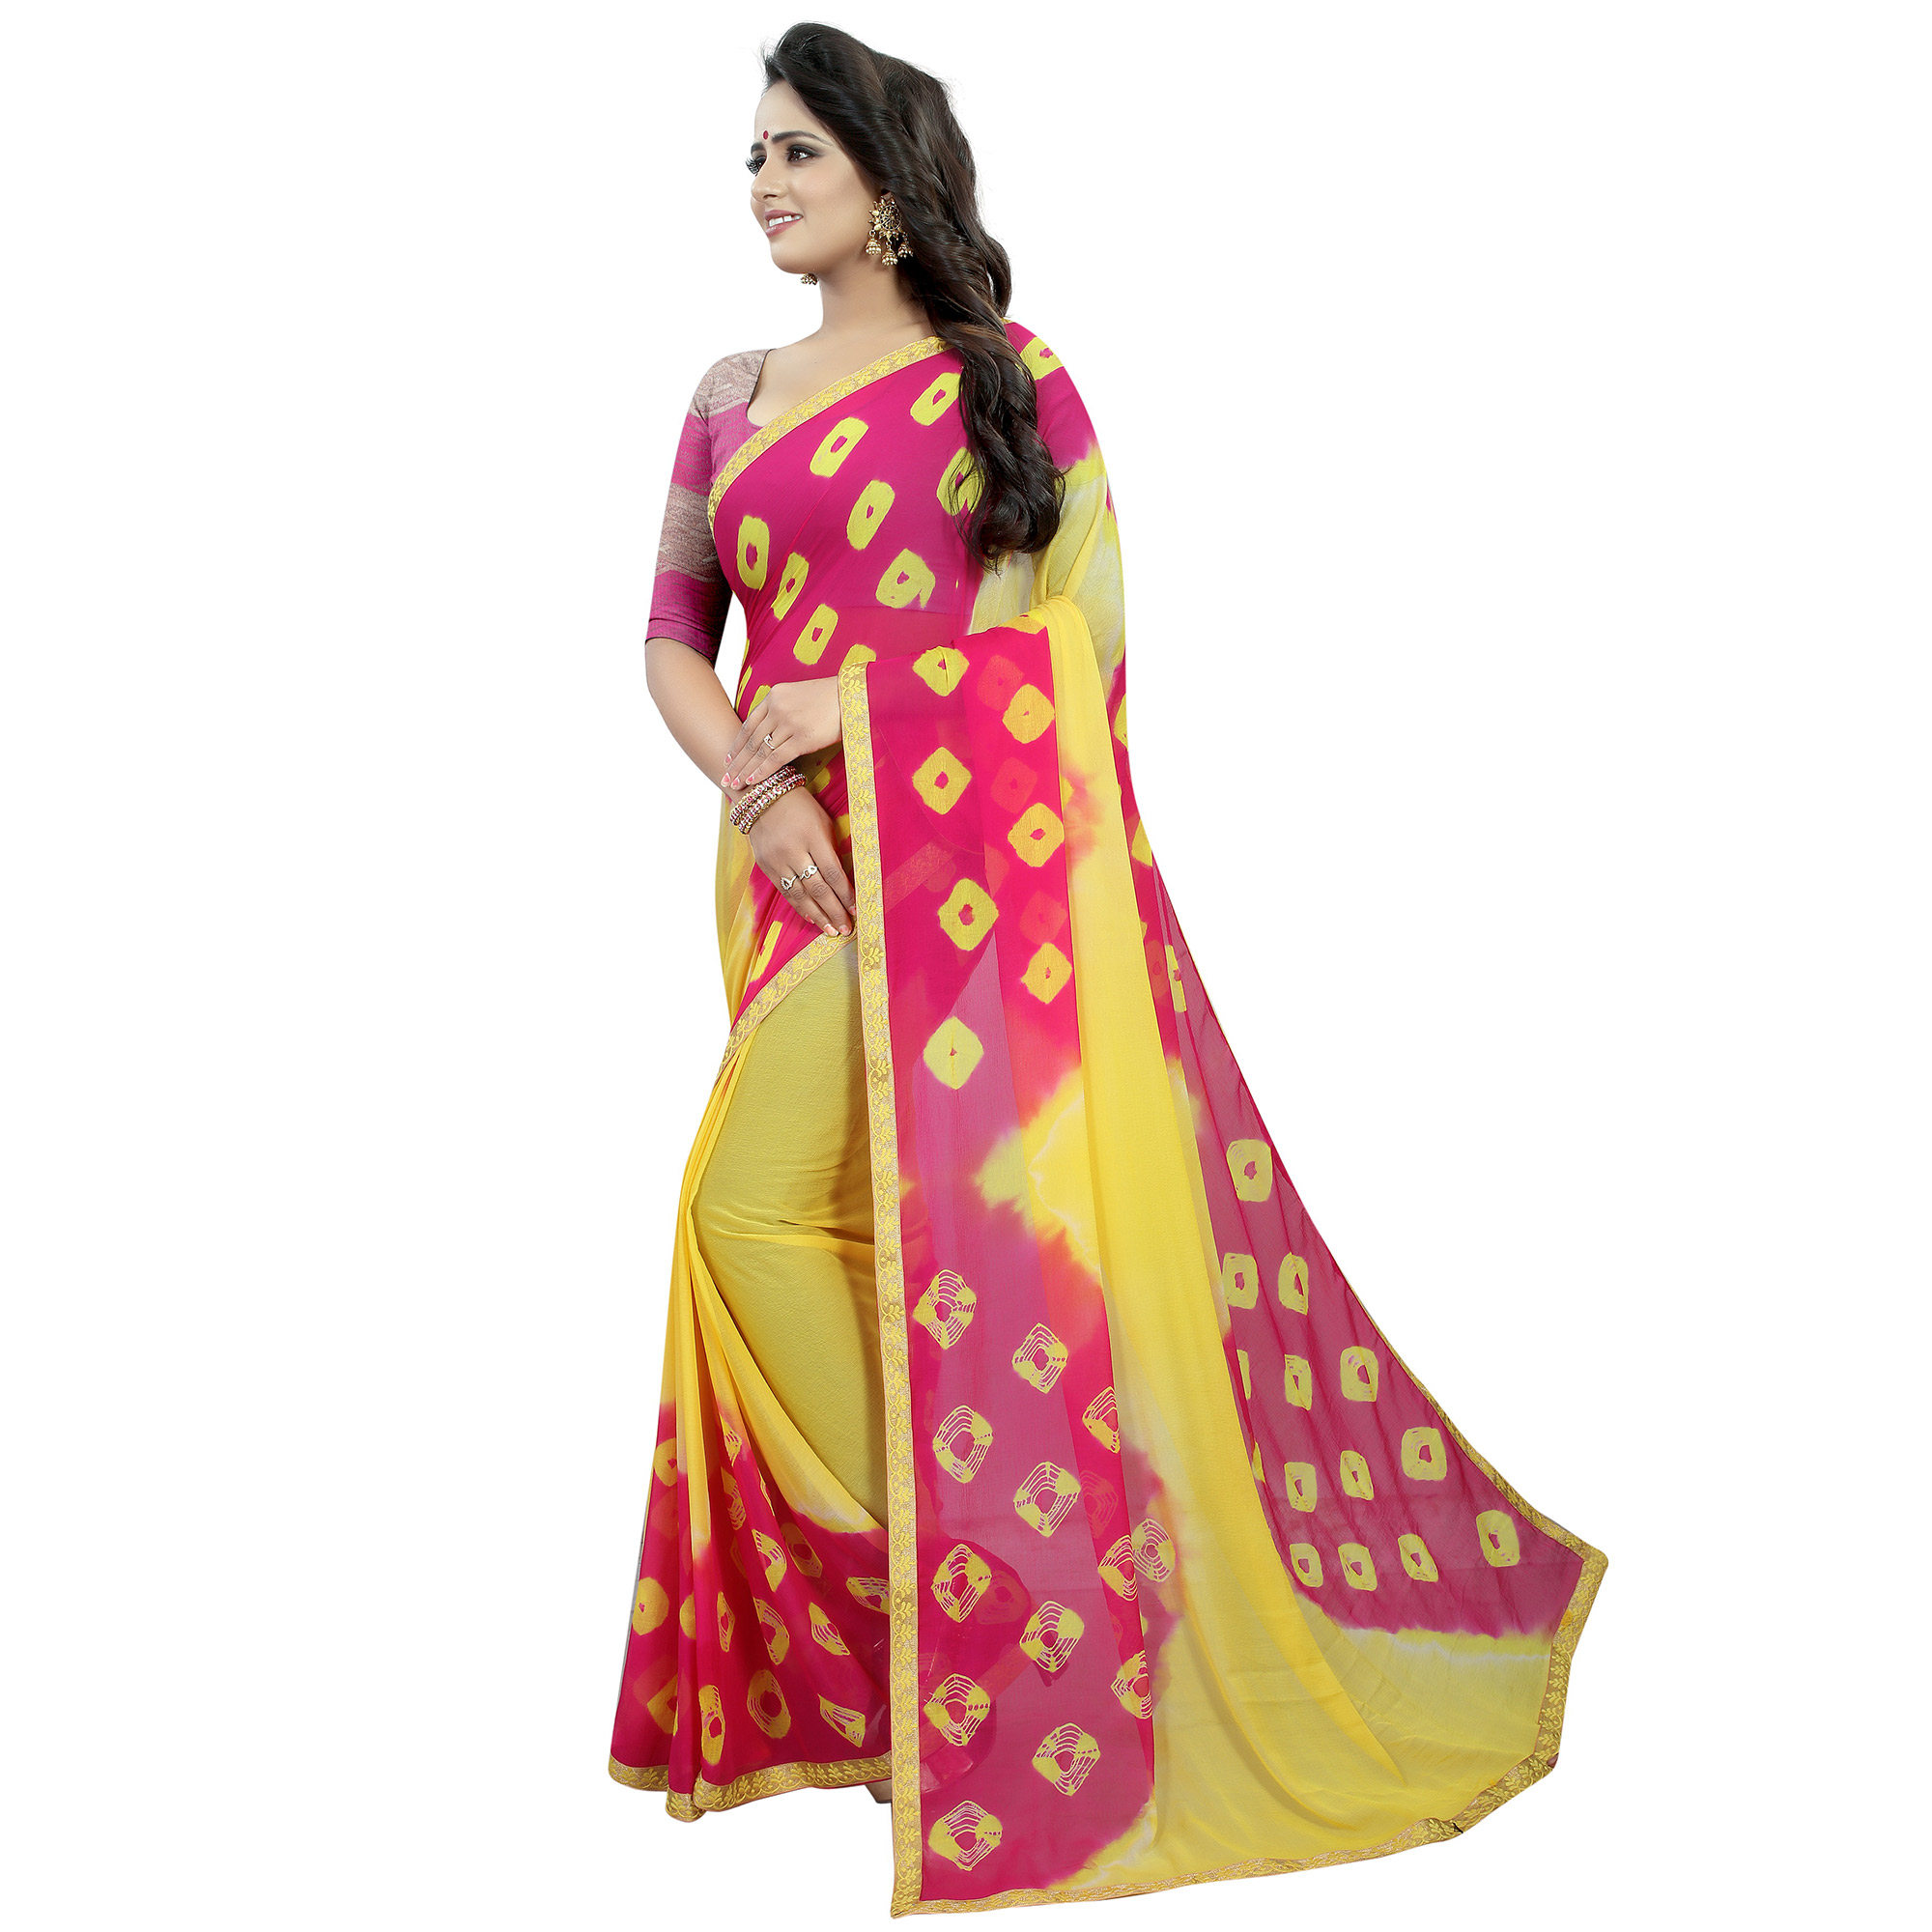 Blooming Yellow - Pink  Colored Casual Printed Chiffon Saree